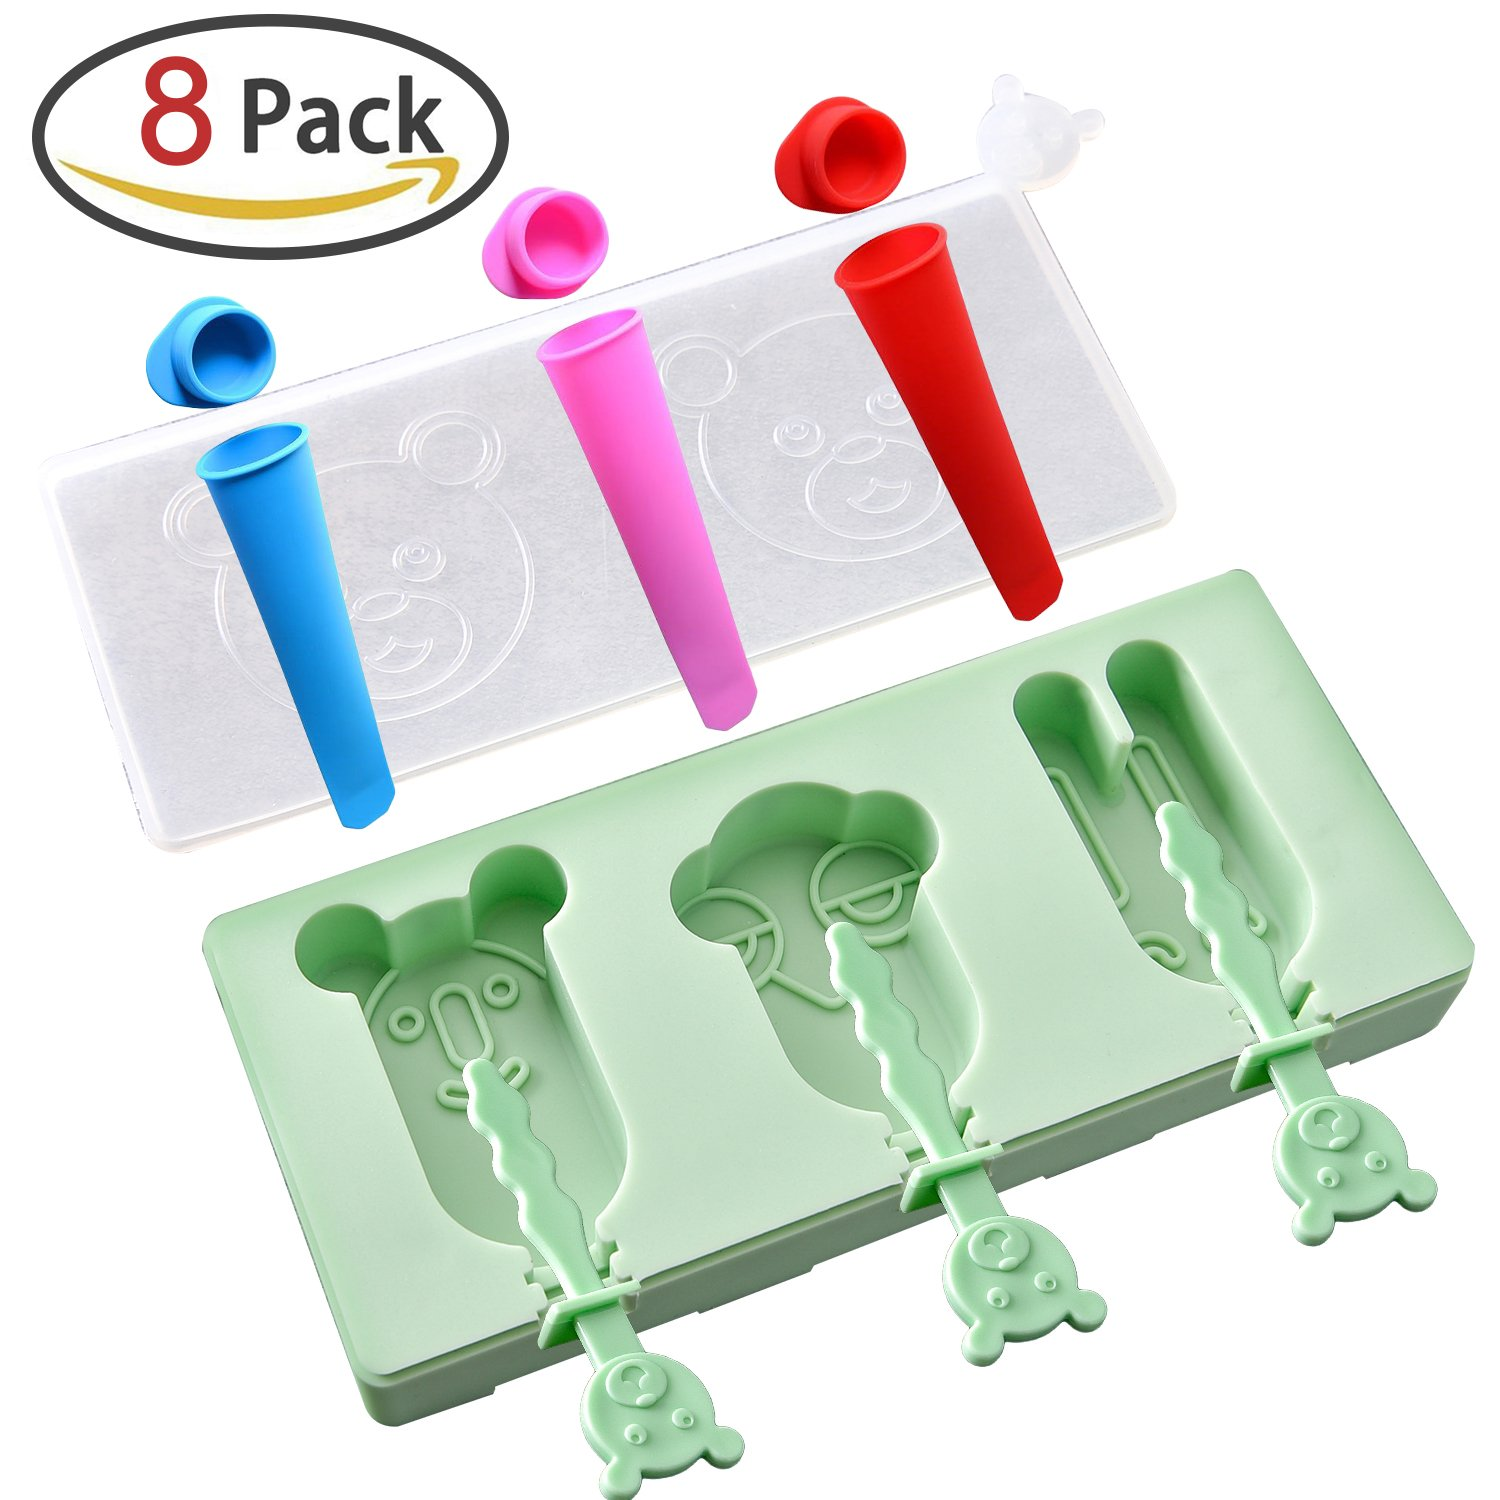 Ice Lolly Moulds Silicone, Peicci Reusable DIY Frozen Ice Cream Mould with Dust Cover and 3 pcs Popsicle Moulds, BPA Free